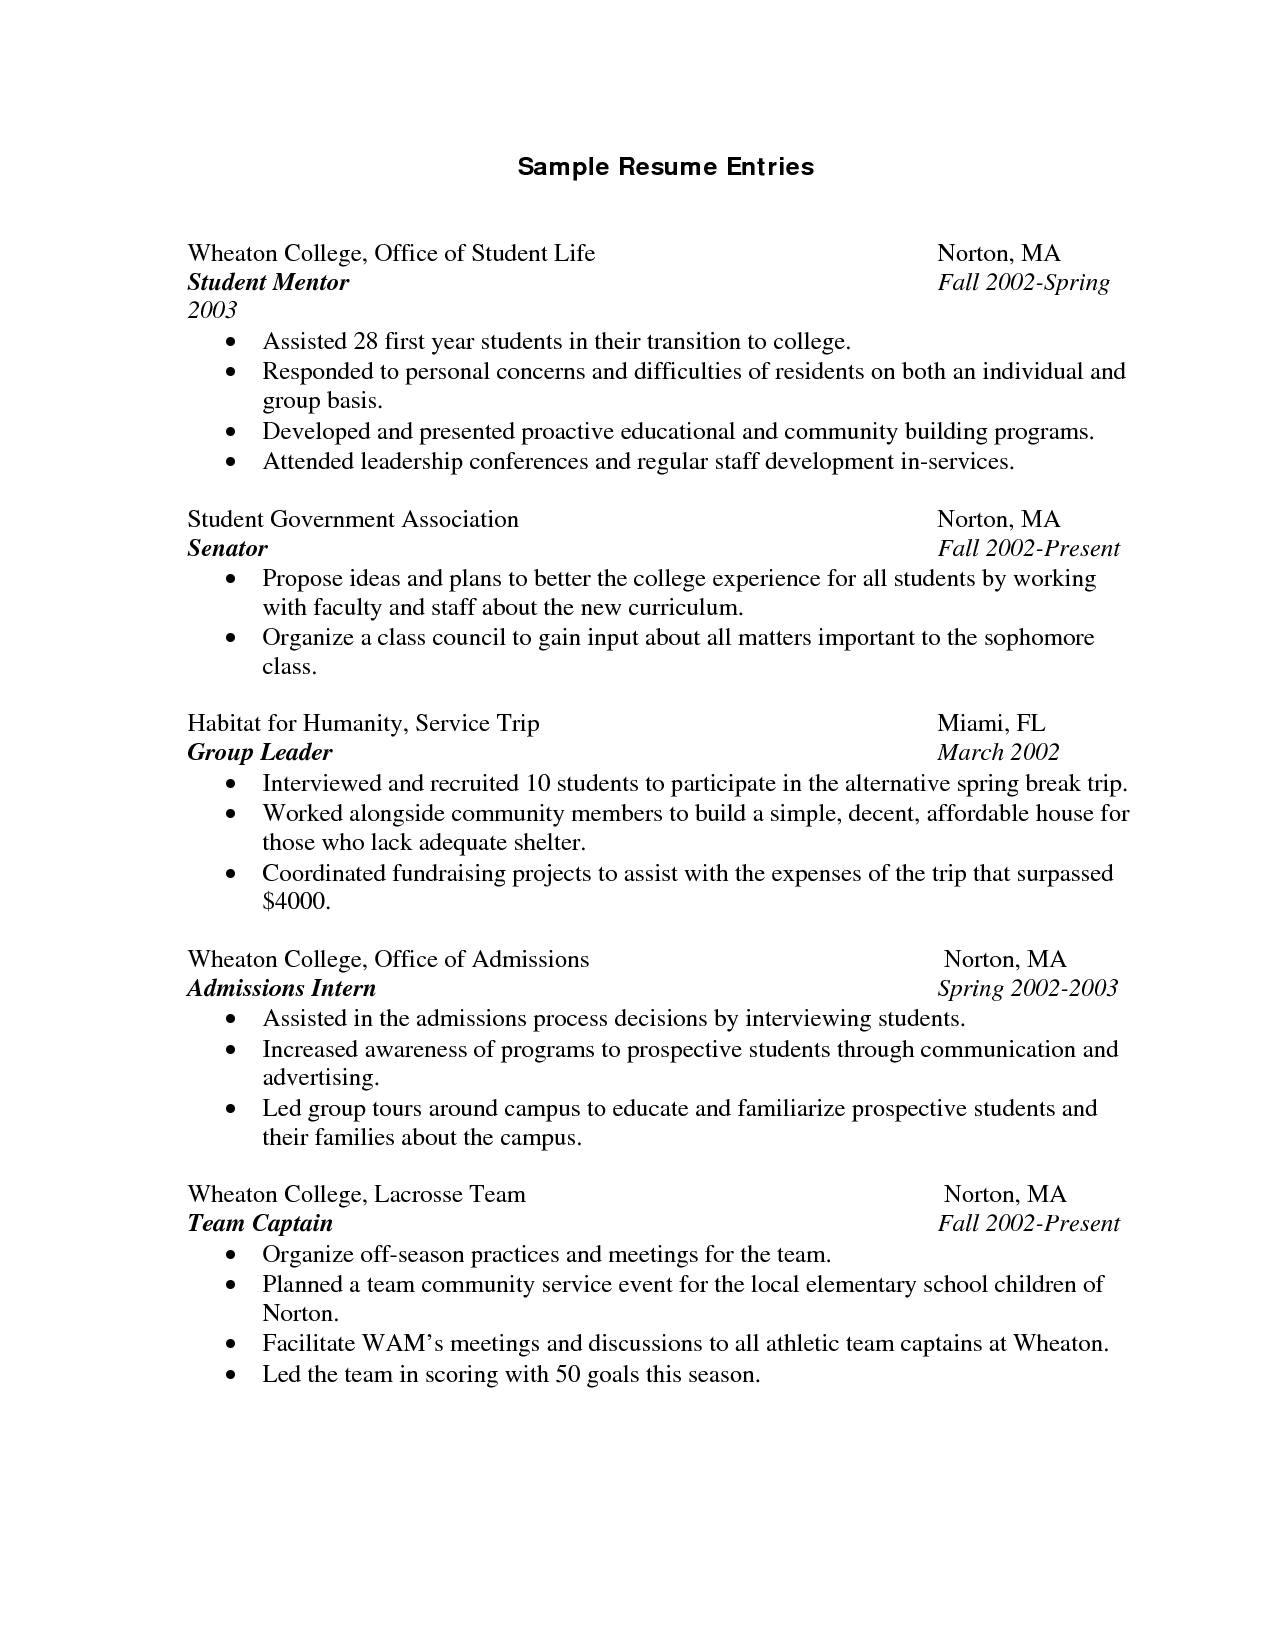 Sample Resume College Student Resume Template For College Students  Httpwwwresumecareer